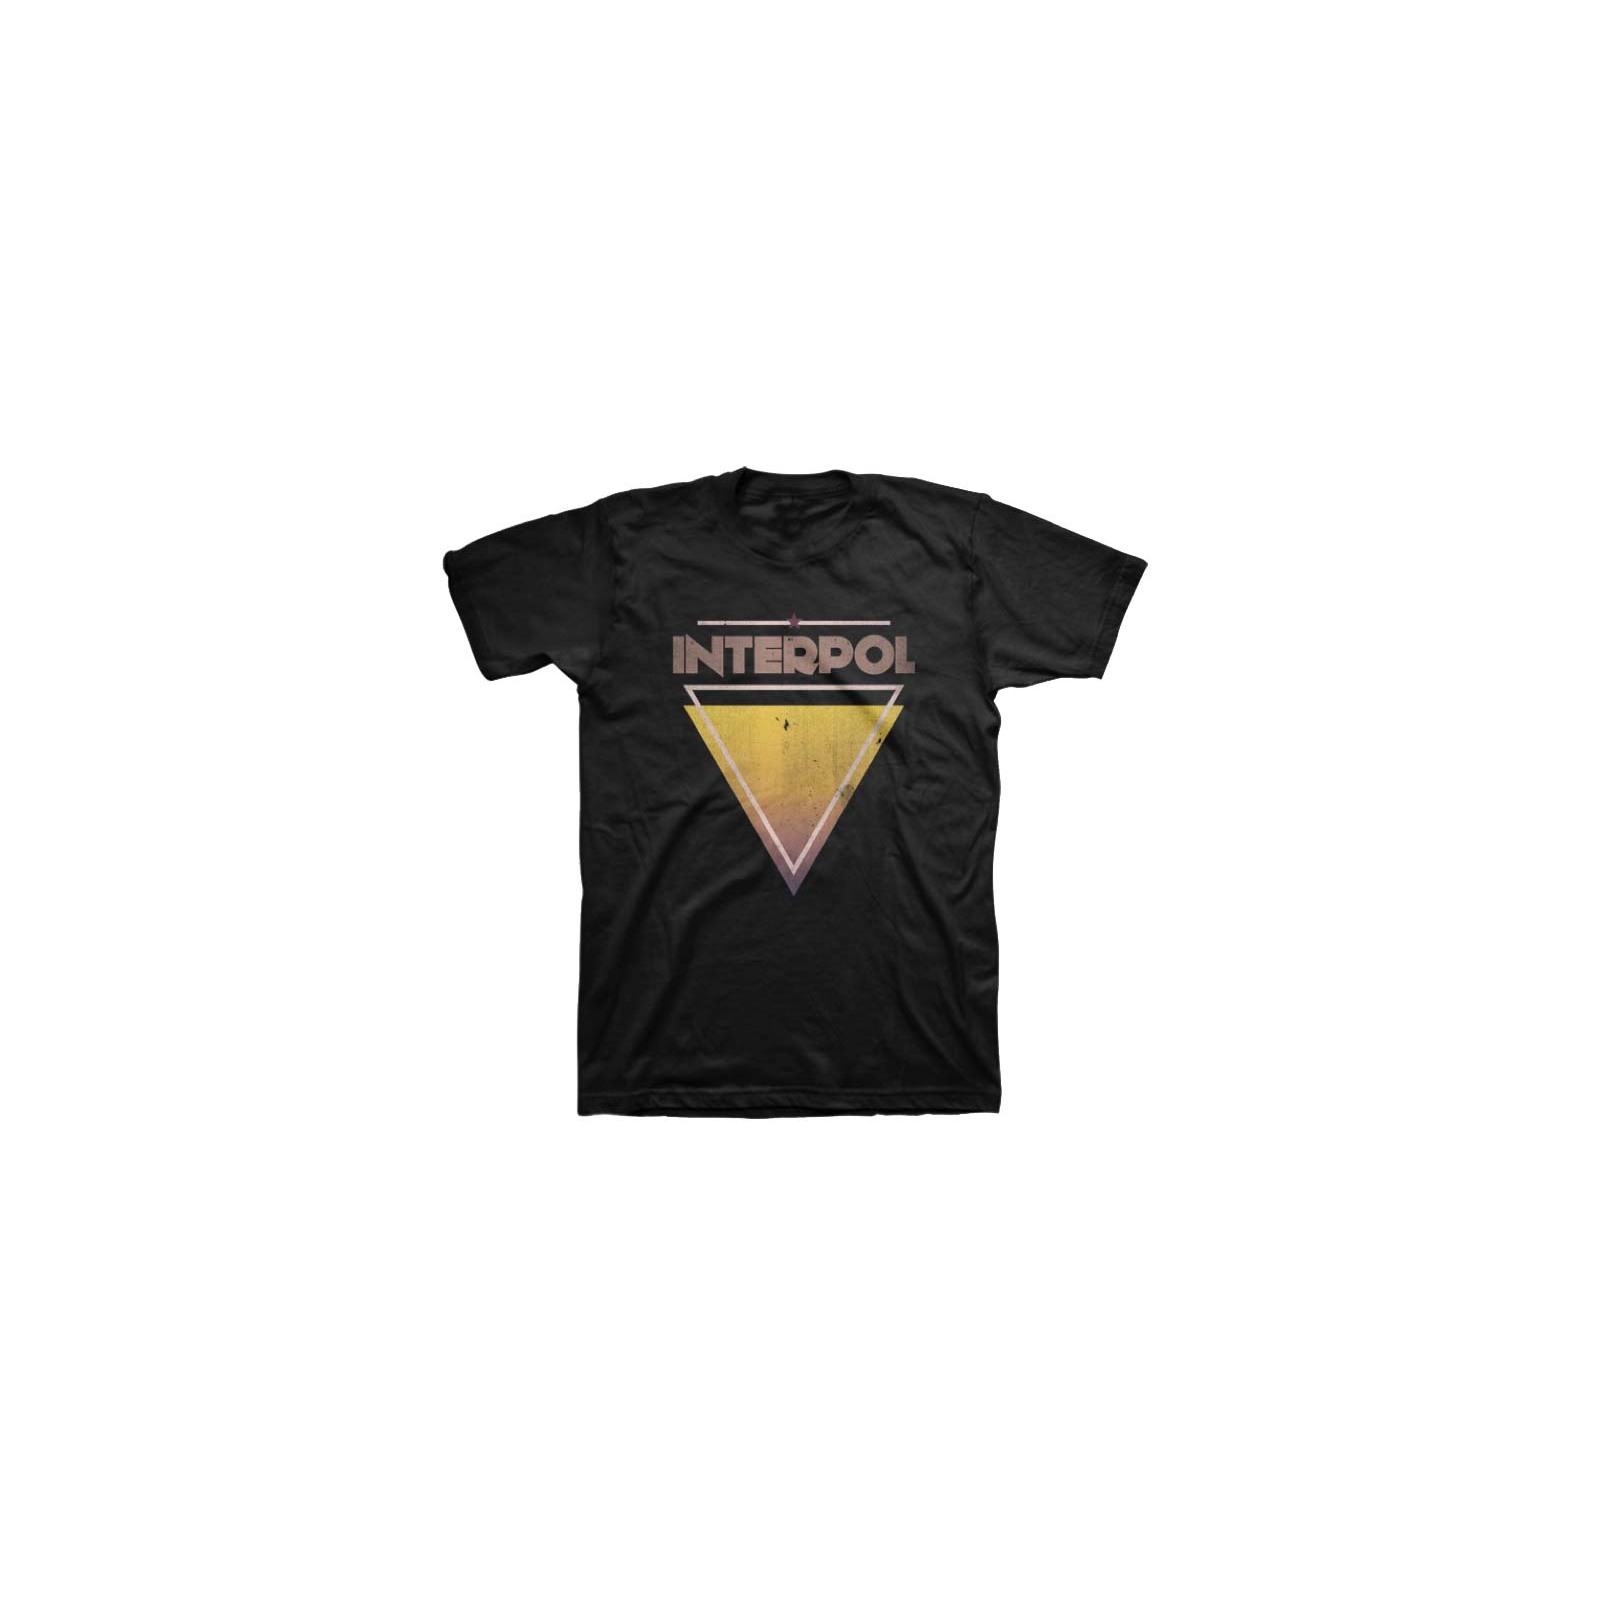 INTERPOL TRIANGLE TEE X-LARGE